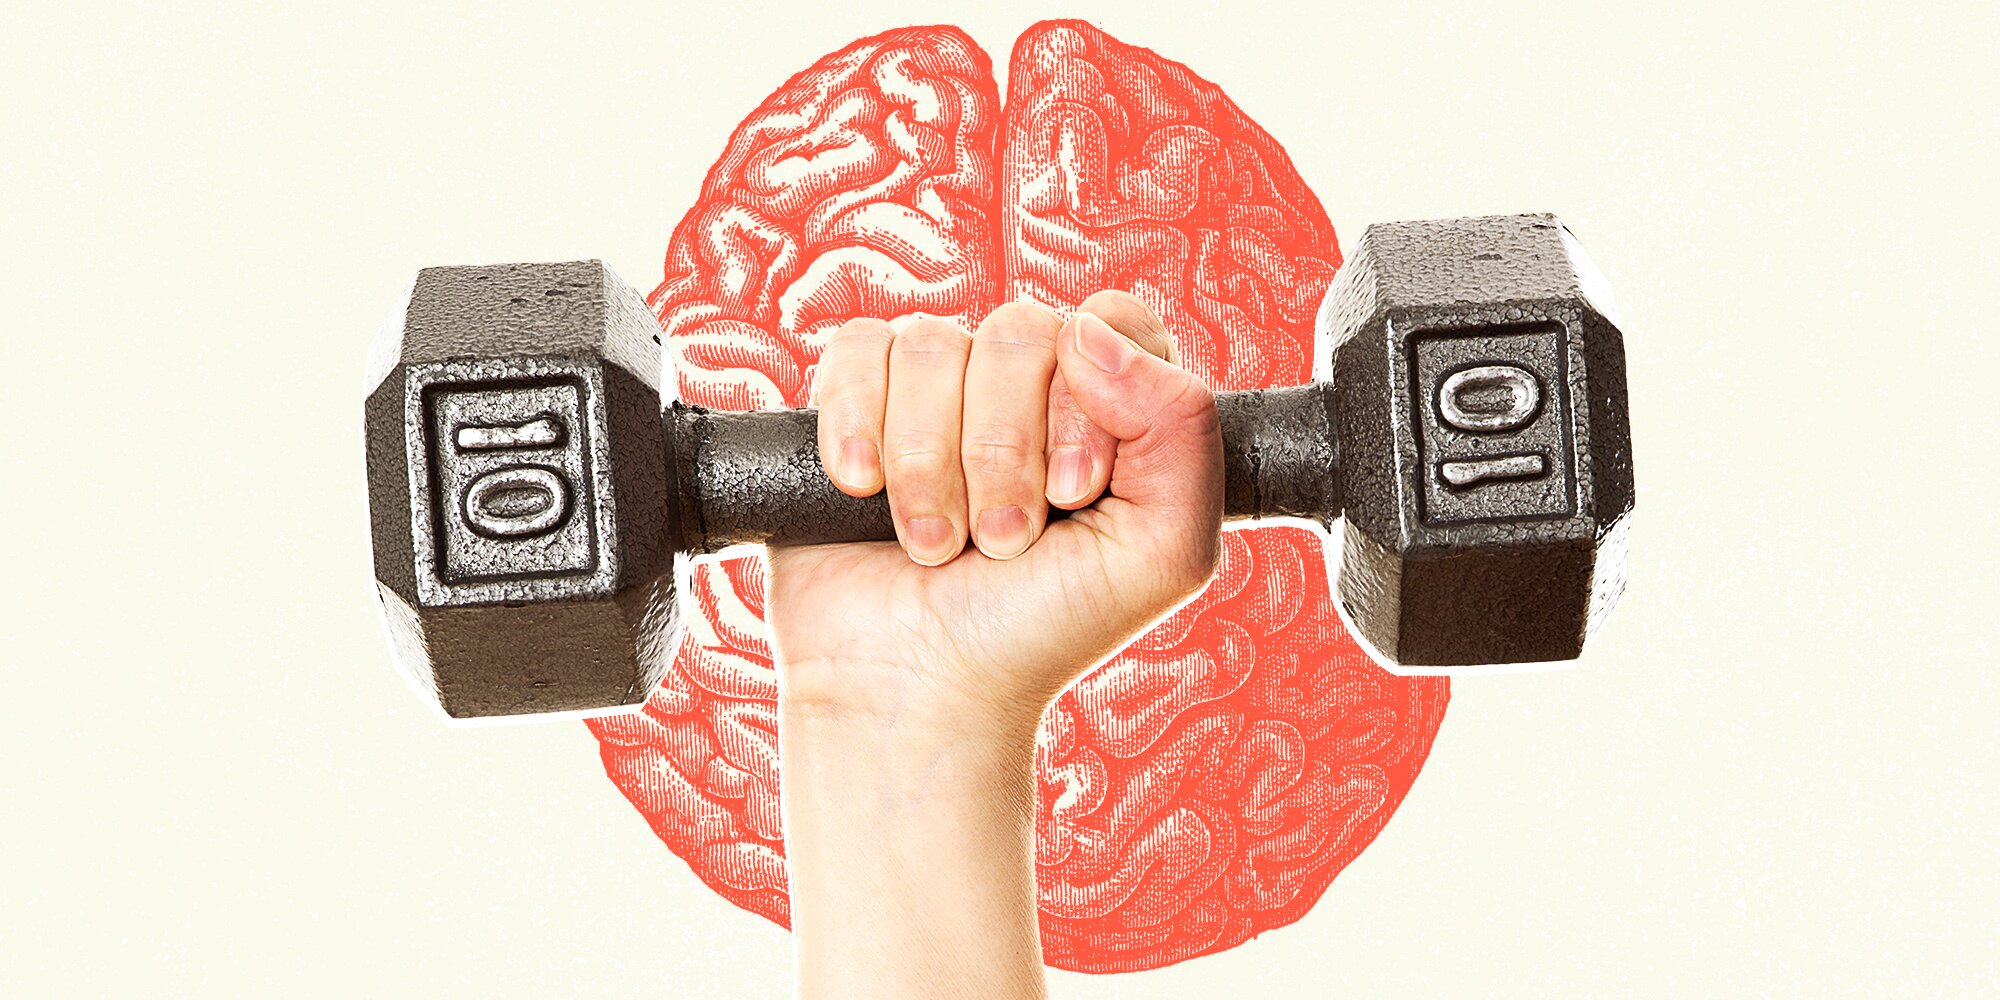 How to Exercise for Better Brain Health, According to Experts